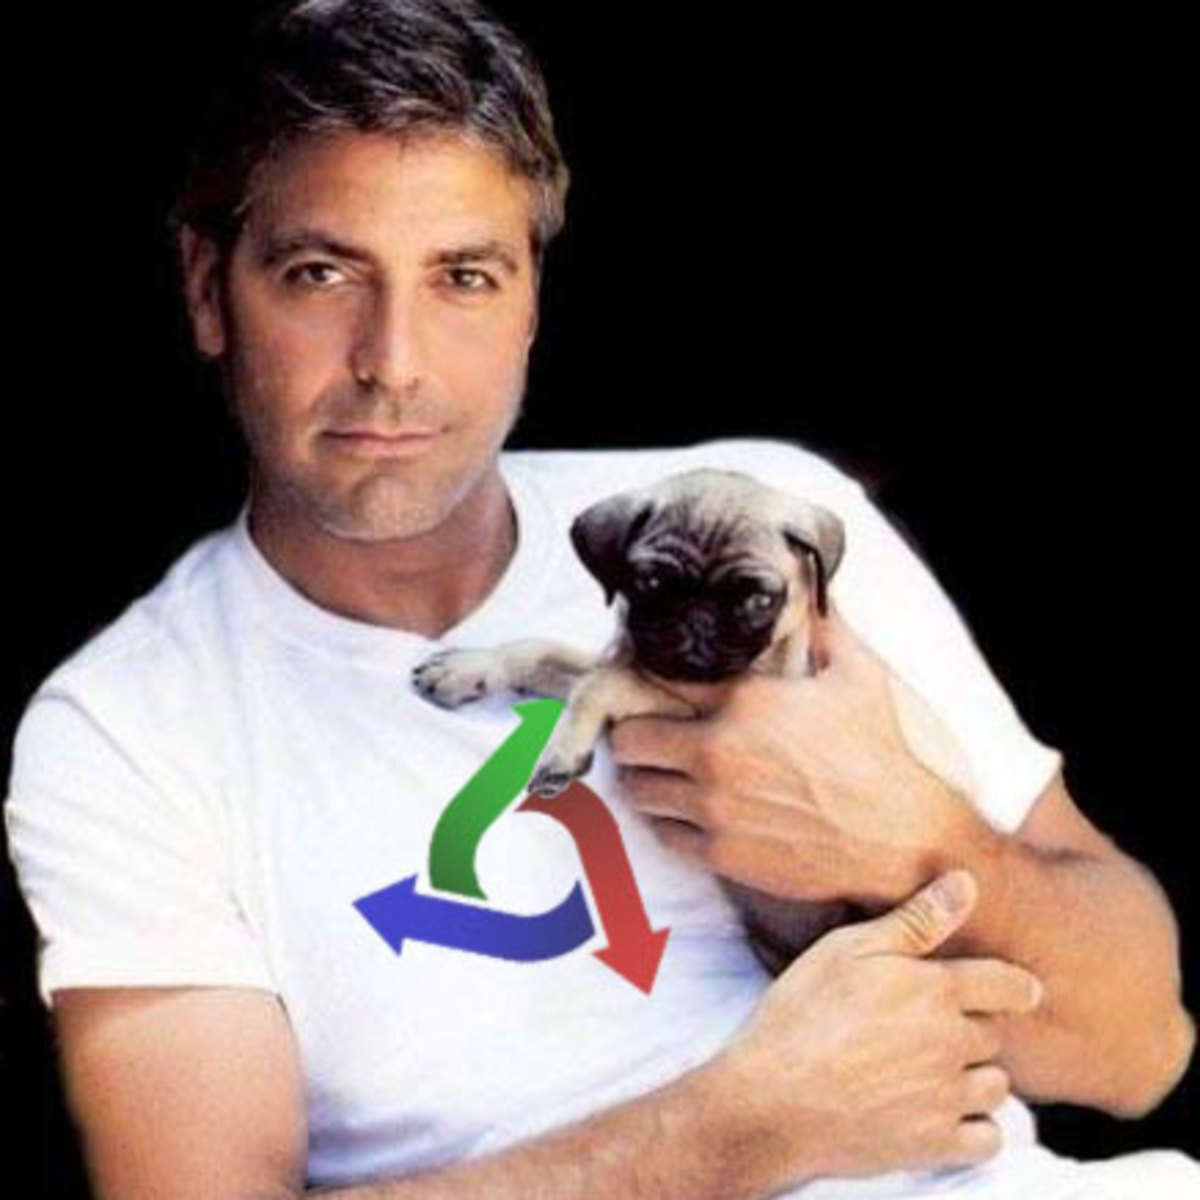 George Clooney was one of the founding members and in charge of marketing. But he had a terrible work ethic and wasn't as good looking as Ryan Hupfer, so they sacked him and brought Ryan in on the team. The pug fetish got to stay though.